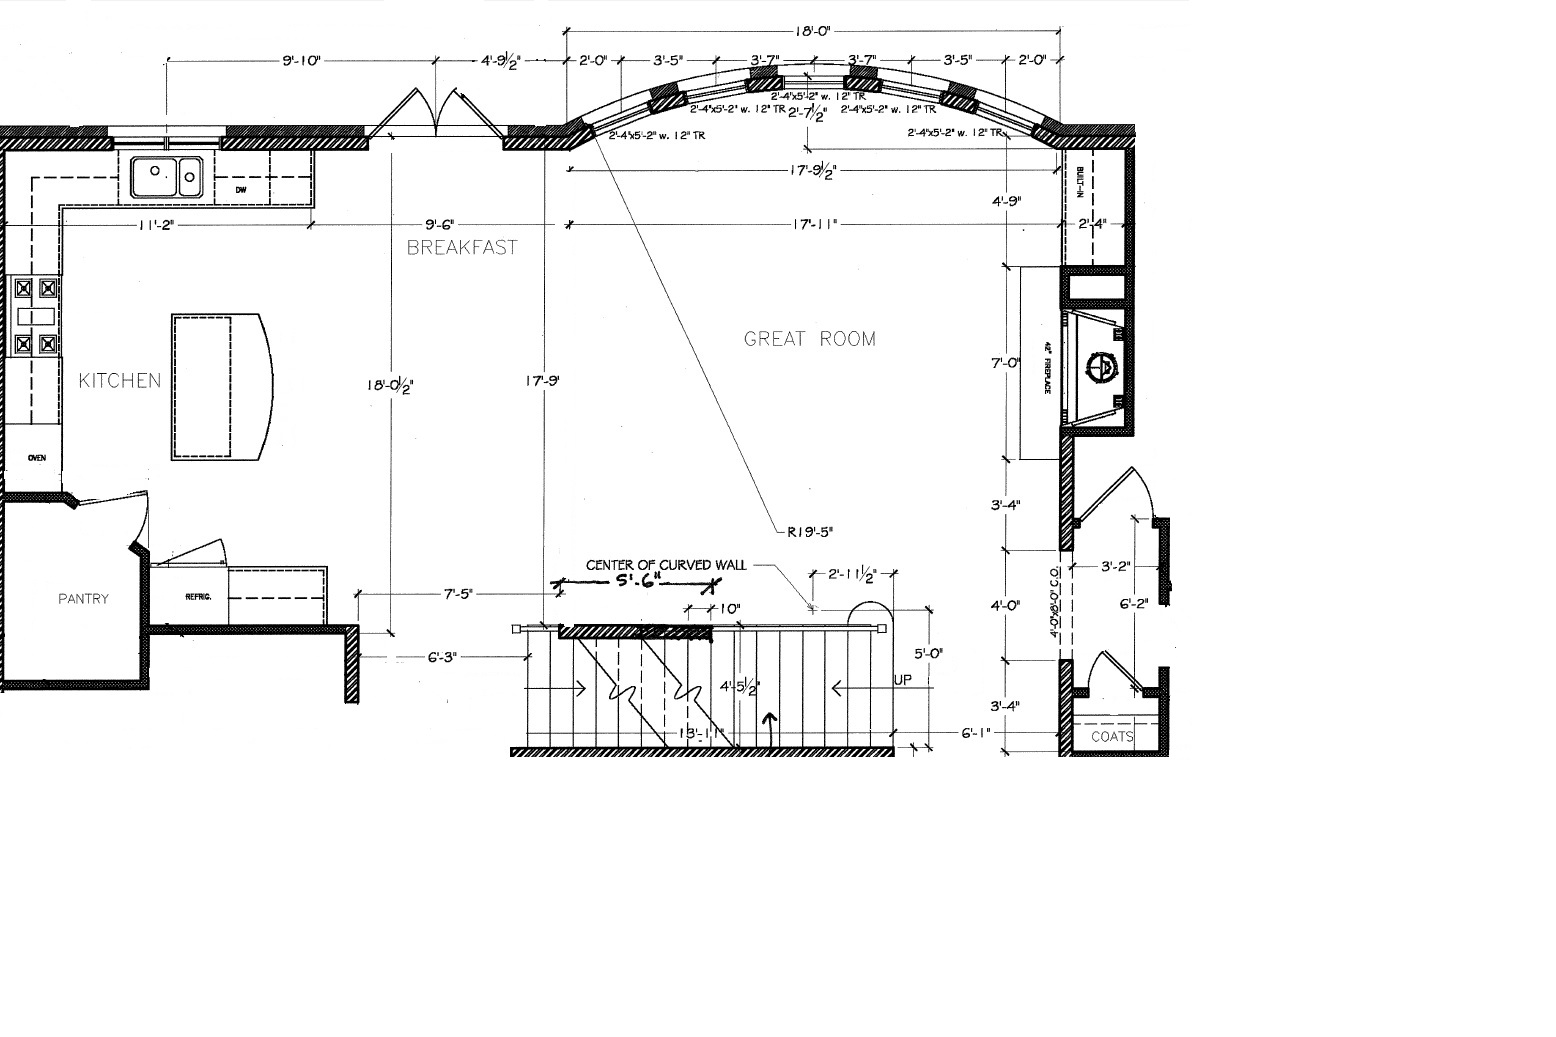 Furniture Layout Help Needed (floor plan, fireplace, paint ...